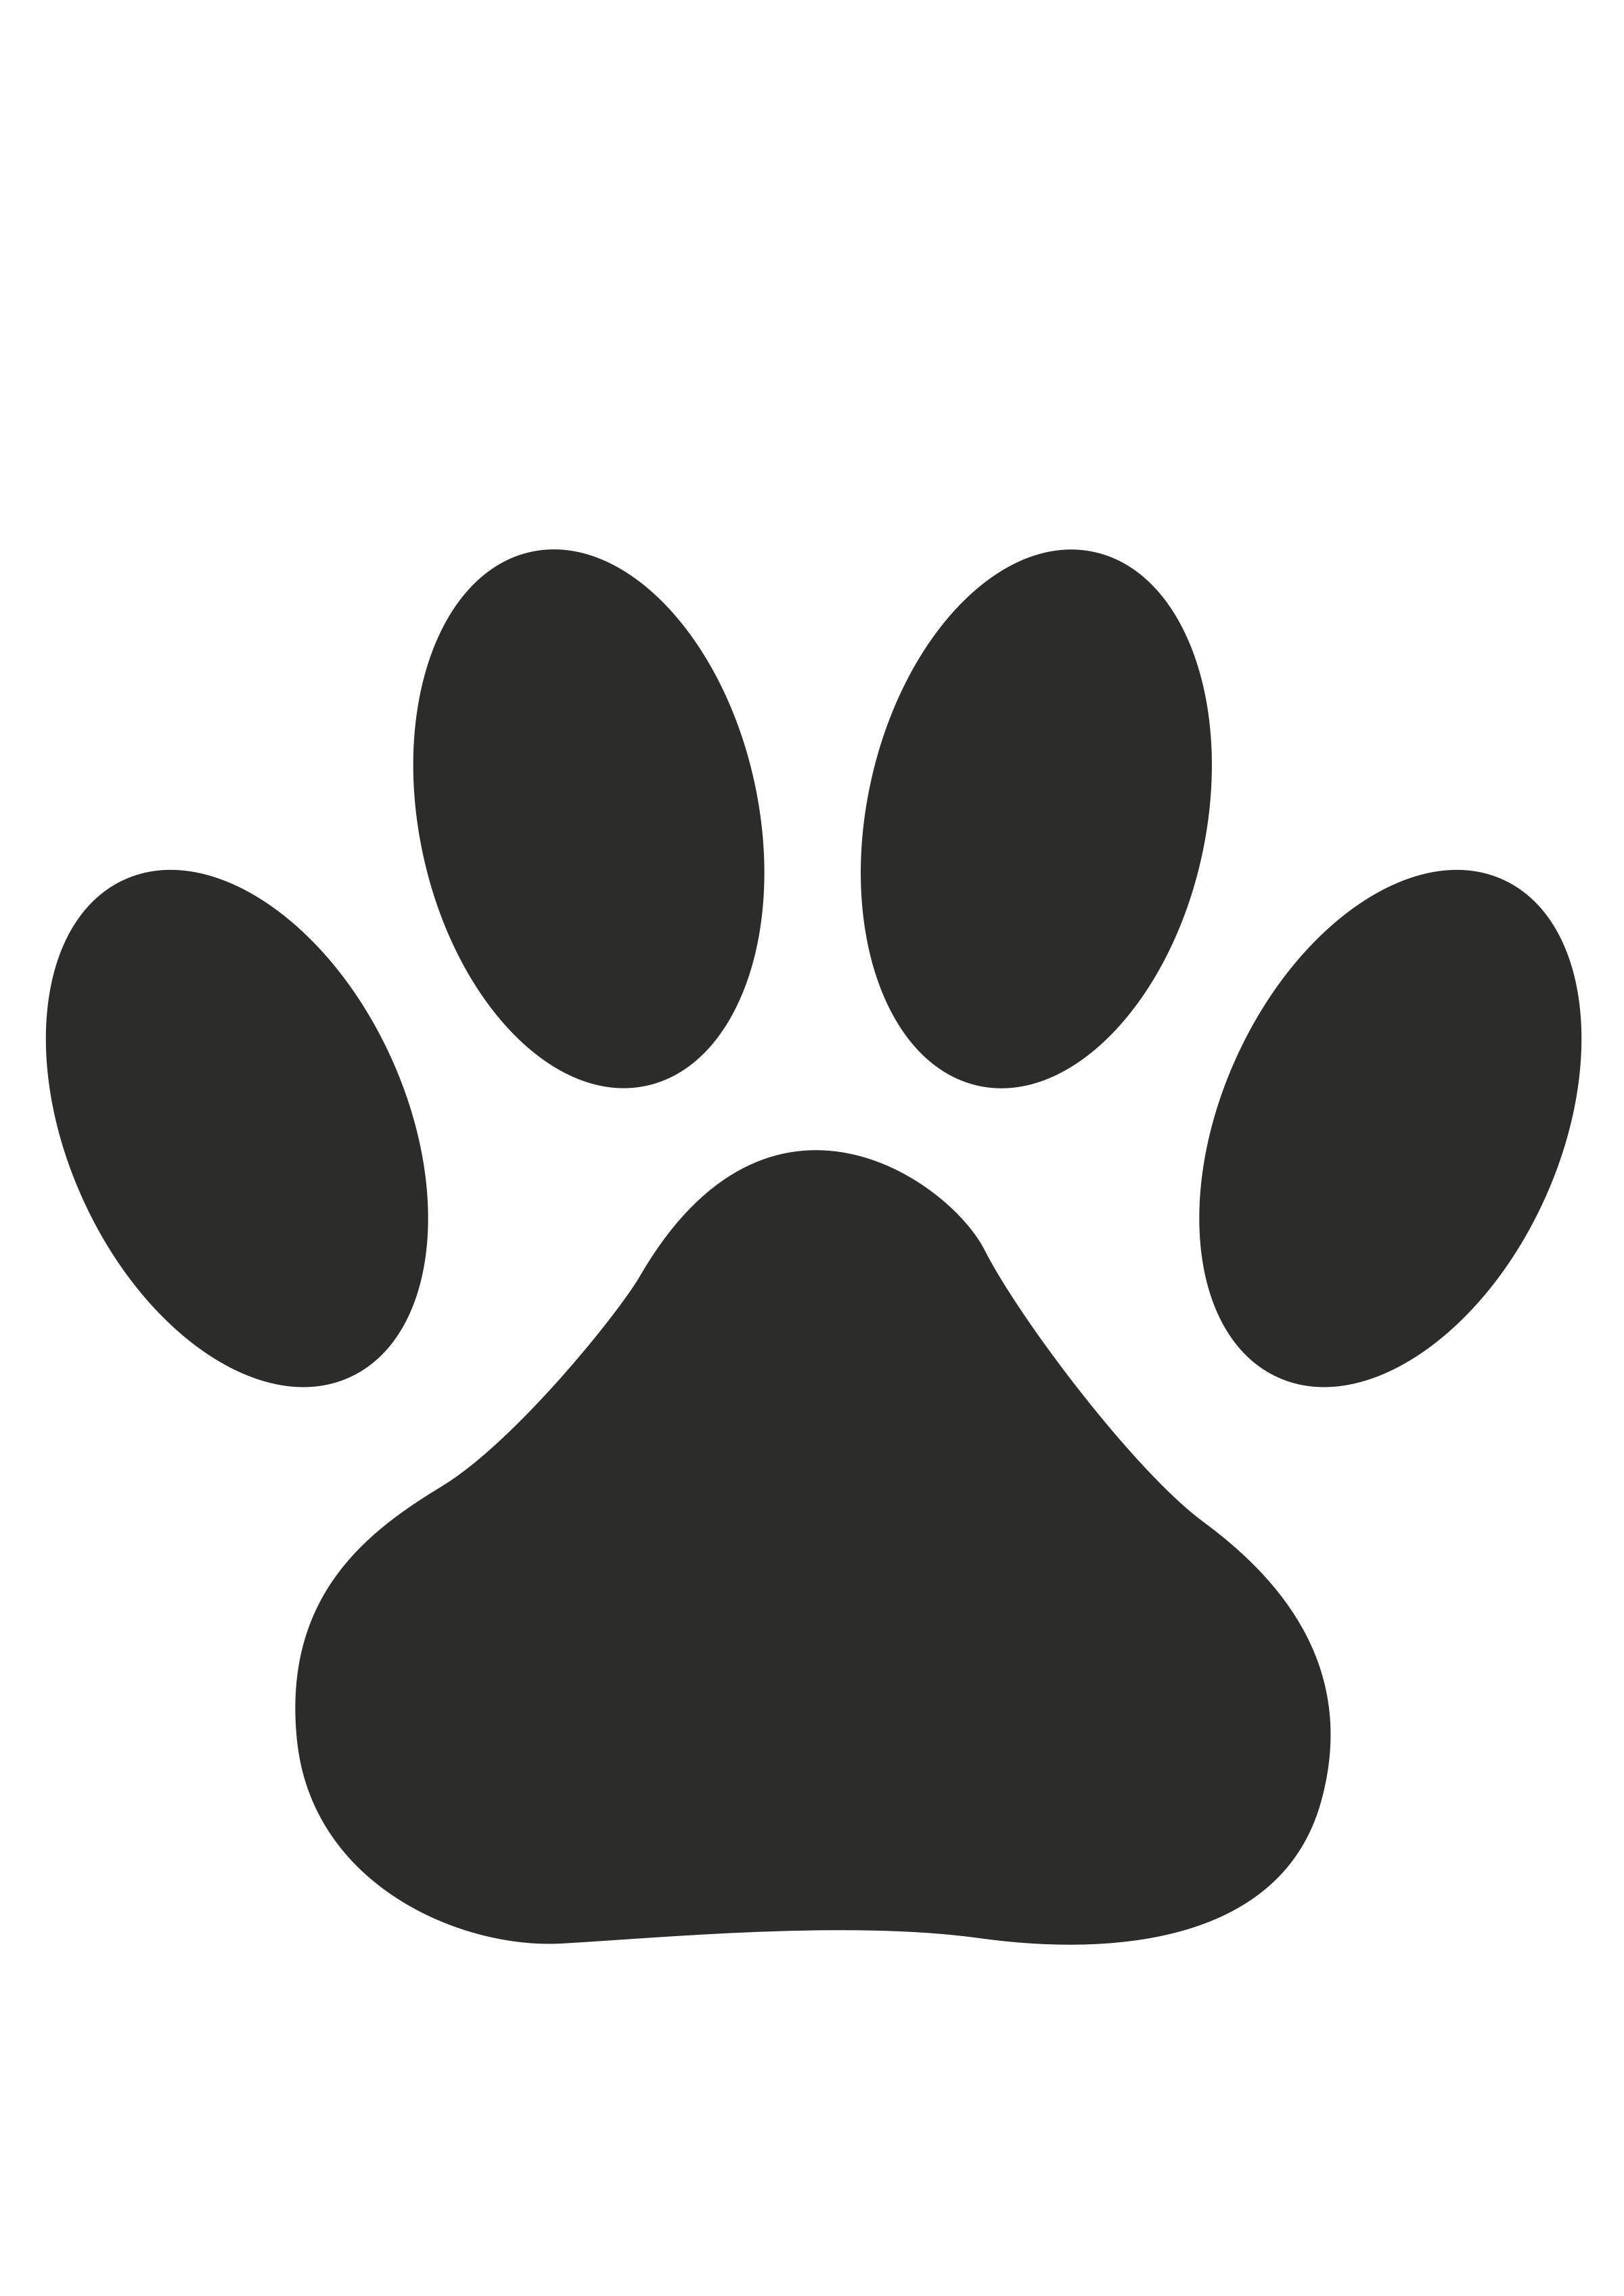 Paw Prints svg #4, Download drawings